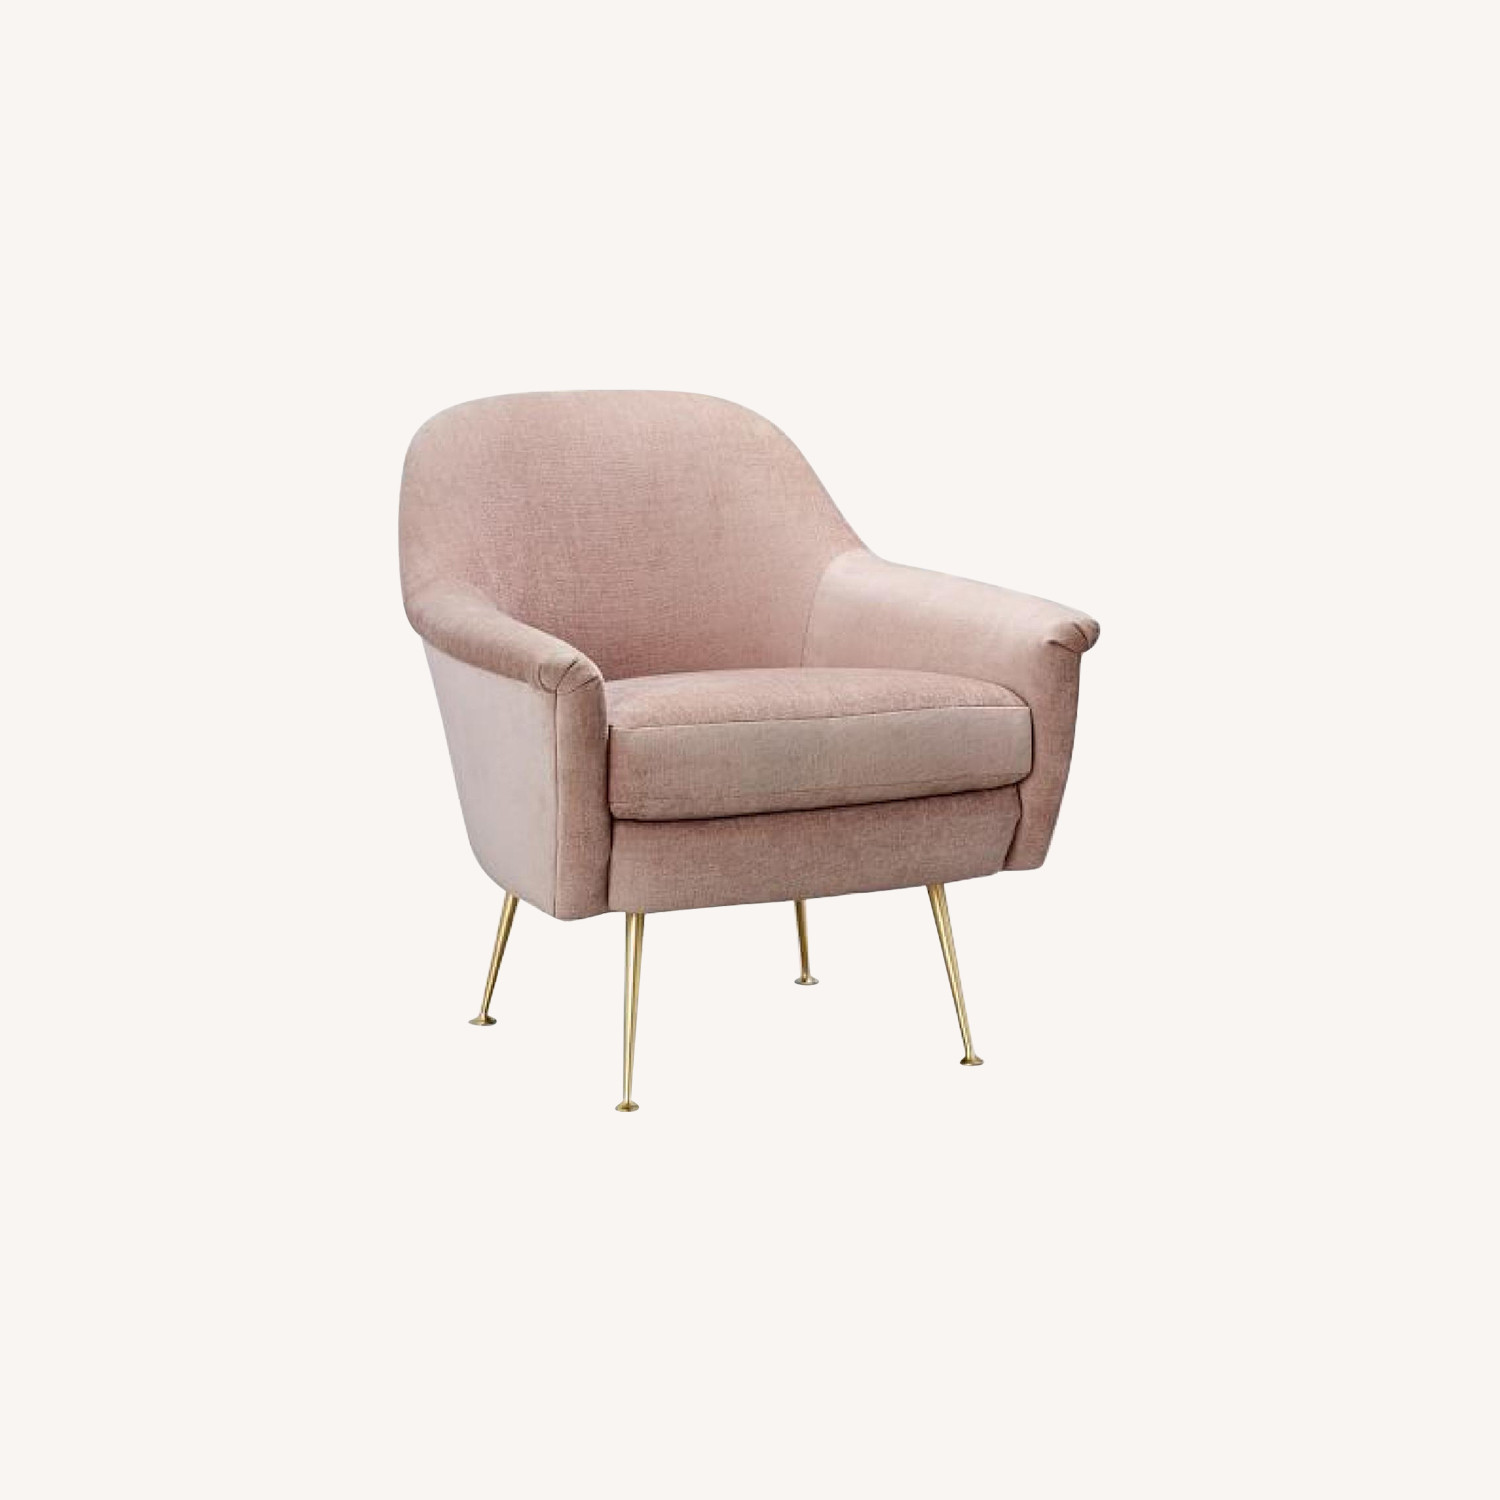 West Elm Phoebe Chair in Light Pink Distressed Velvet